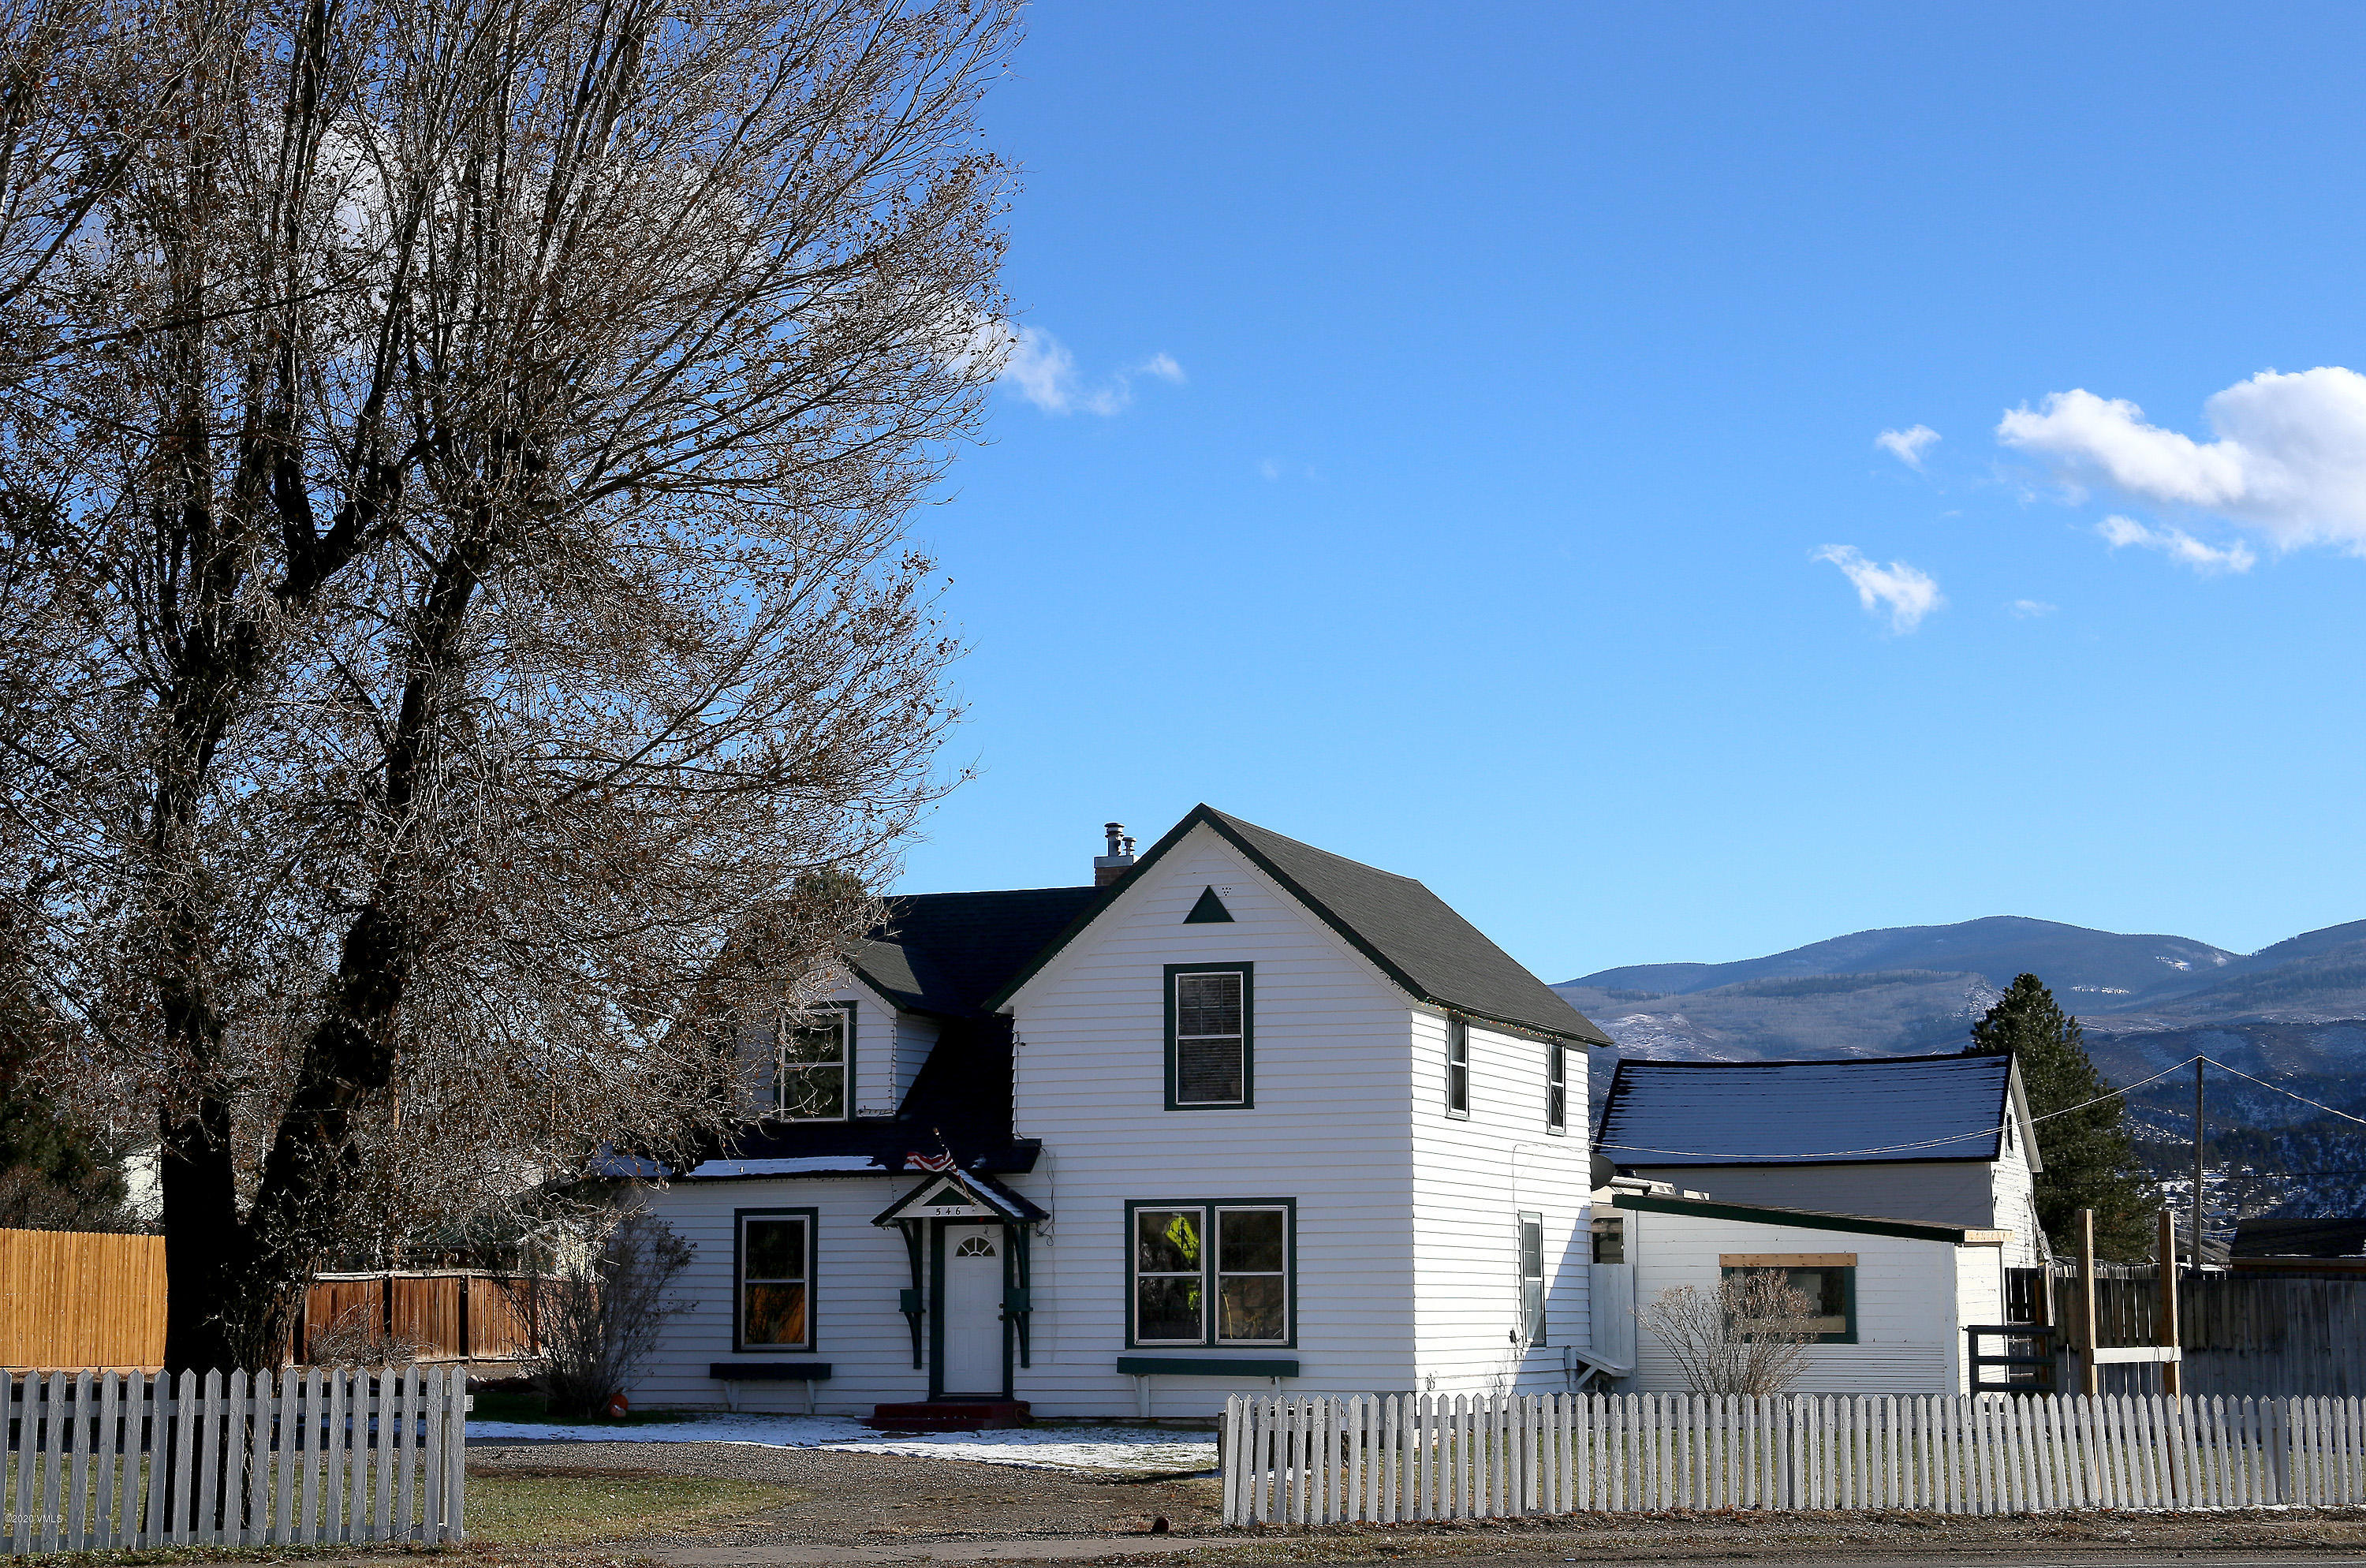 Truly a unique opportunity to develop in a premiere location with 2 access points off of Highway 6 and another separate access off of 6th Street. This land was originally owned by the Bucholtz Family and their 1908 Sears & Roebuck residence has been well-maintained with 4 bedrooms and 1.5 bathrooms. This is one of the largest parcels in old town Eagle undeveloped with water rights and 2 acres to be improved with commercial, residential or subdivided. Next to the property's west entrance is a flashing light crosswalk leading to the Eagle River path and direct access to the Eagle River Park or Eagle County Fairgrounds. The Town of Eagle is currently in the process of developing a Highway 6 Corridor Plan which will assess traffic patterns on Highway 6, with a specific focus on the Downtown Core and West Eagle where this property is located. Great exposure to all people traveling to and from the Eagle County Regional Airport. Sale will include the house and 2 story barn but excludes all personal property and other outbuildings including greenhouses.